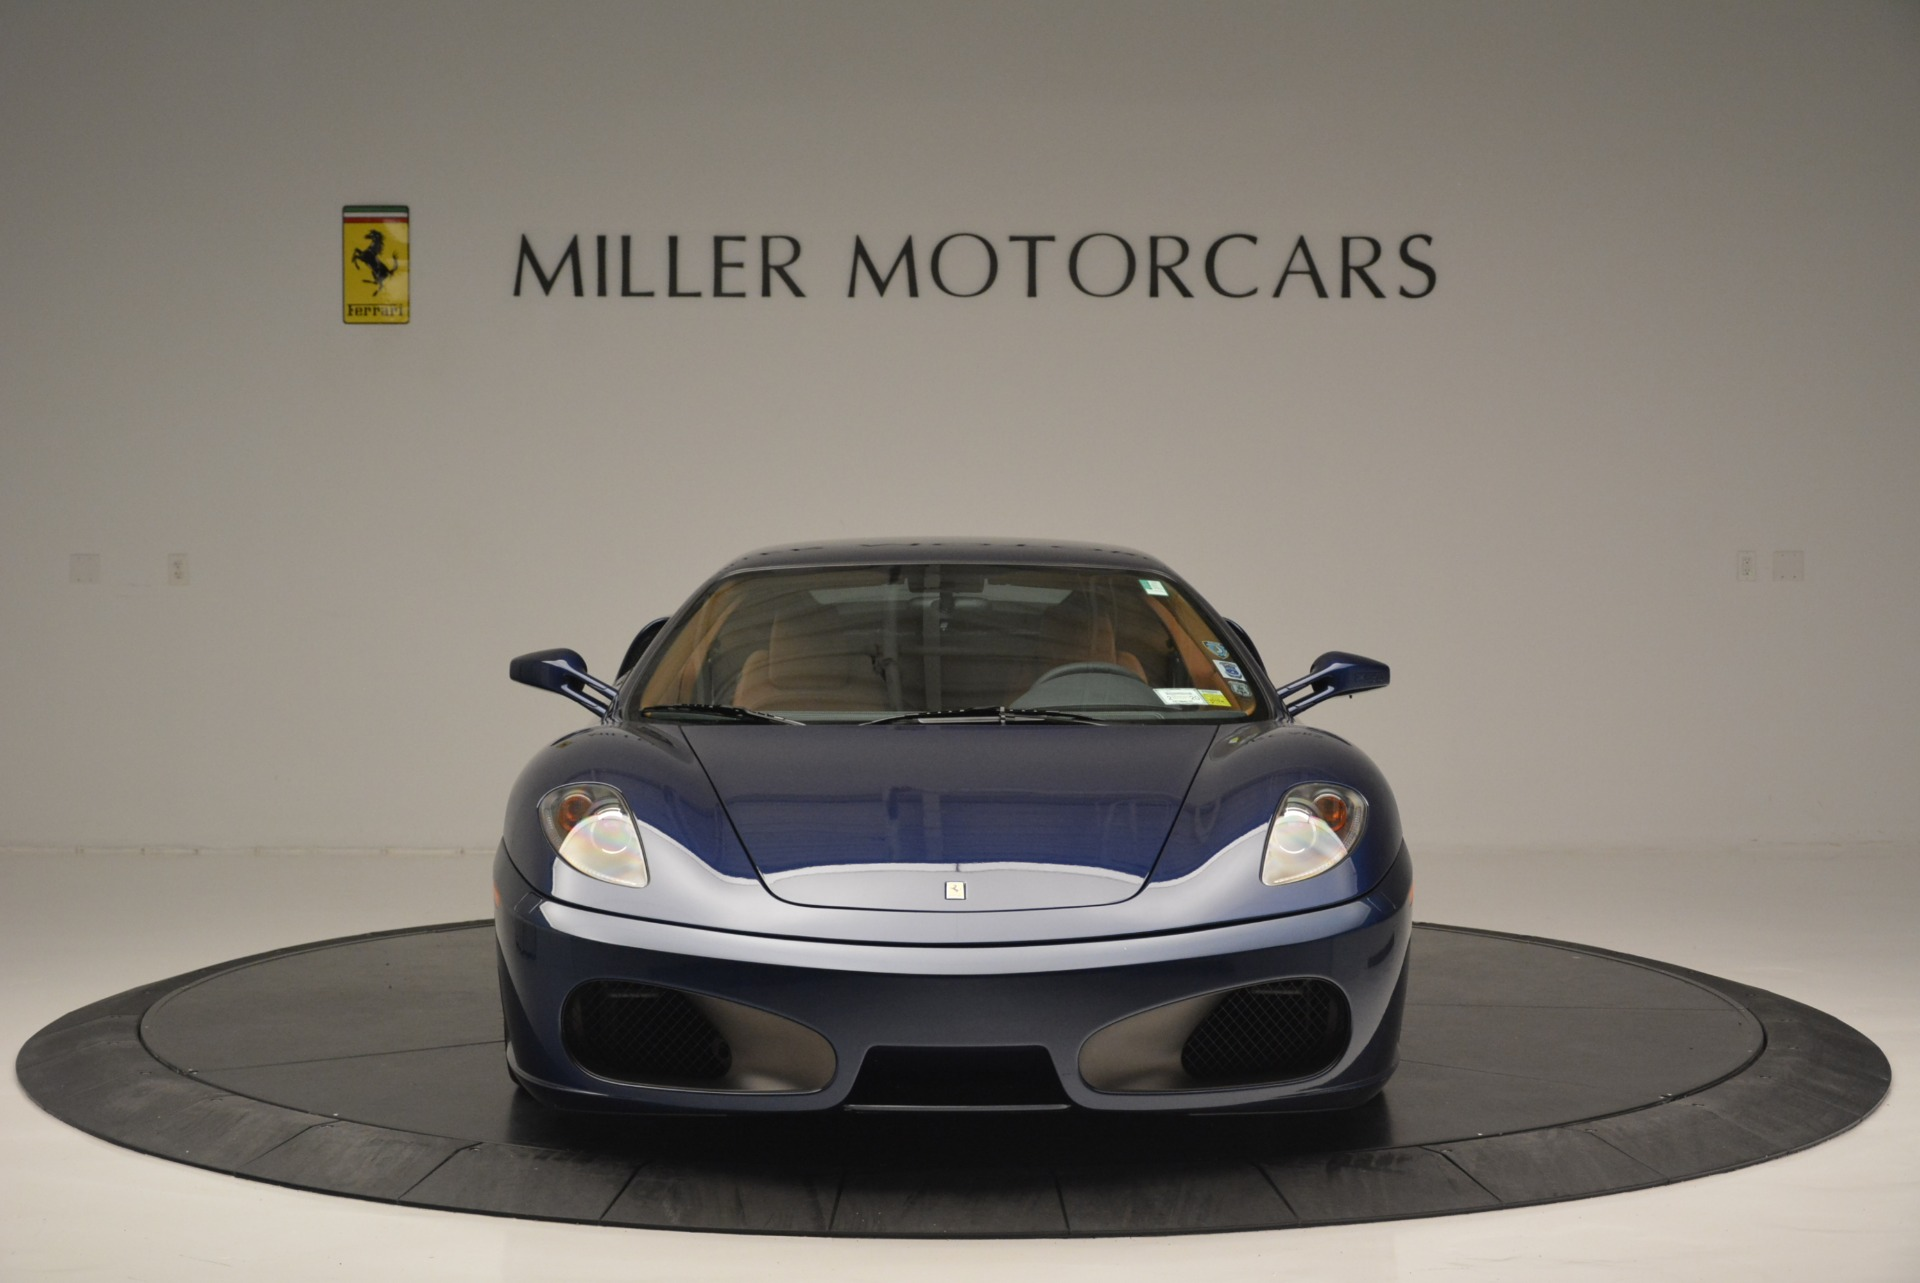 Used 2009 Ferrari F430 6-Speed Manual For Sale In Westport, CT 2466_p12